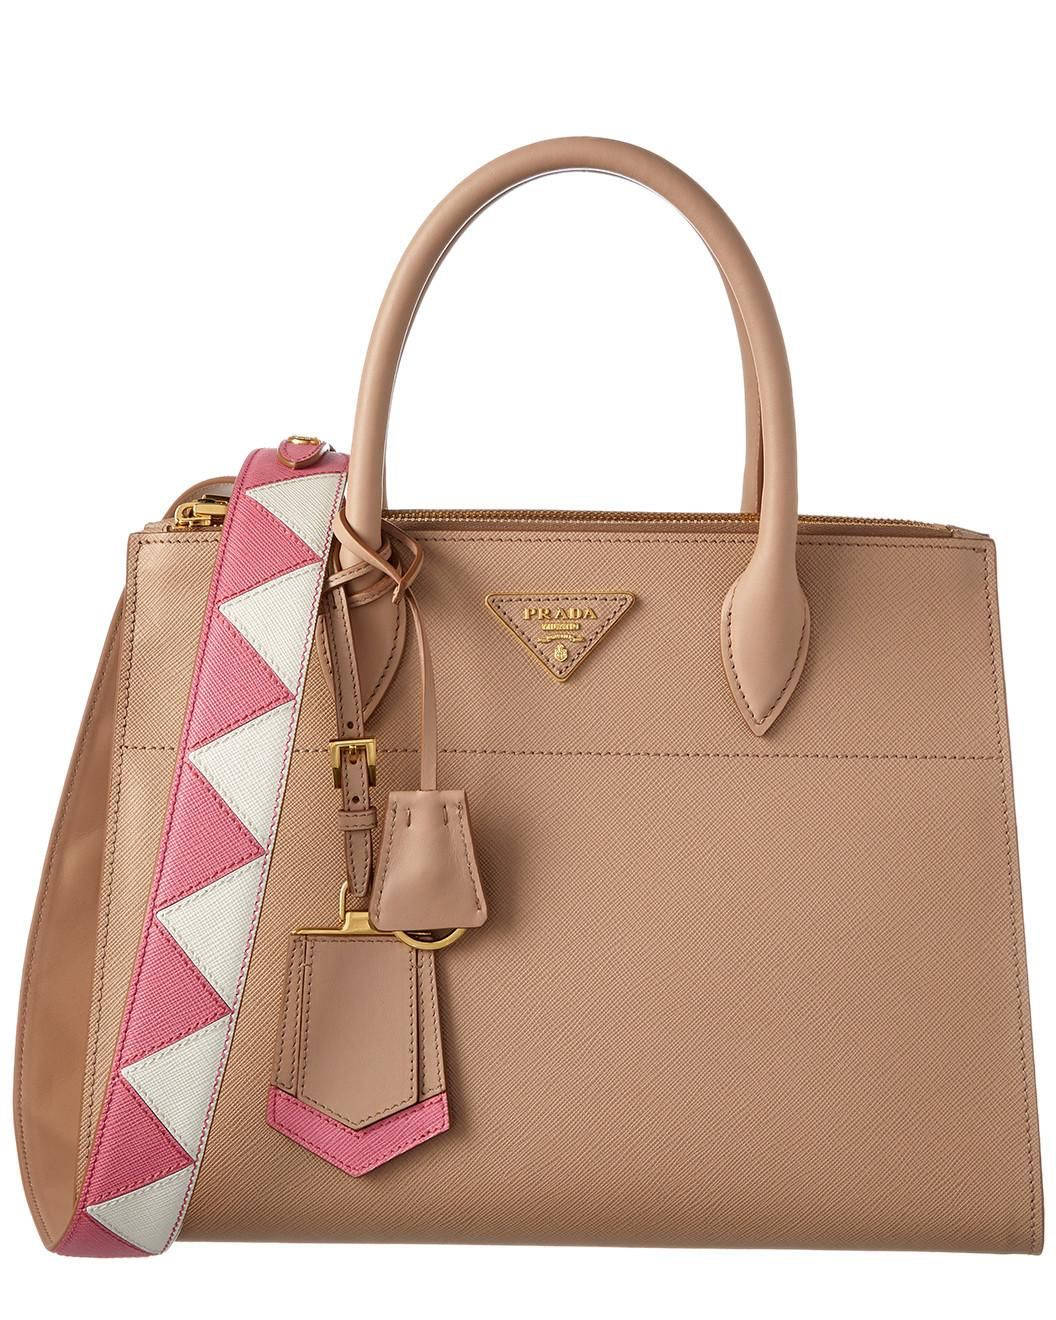 a0d2d28dc53f You need to see this Prada Paradigme Saffiano & City Calf Leather  Double Handle Zip